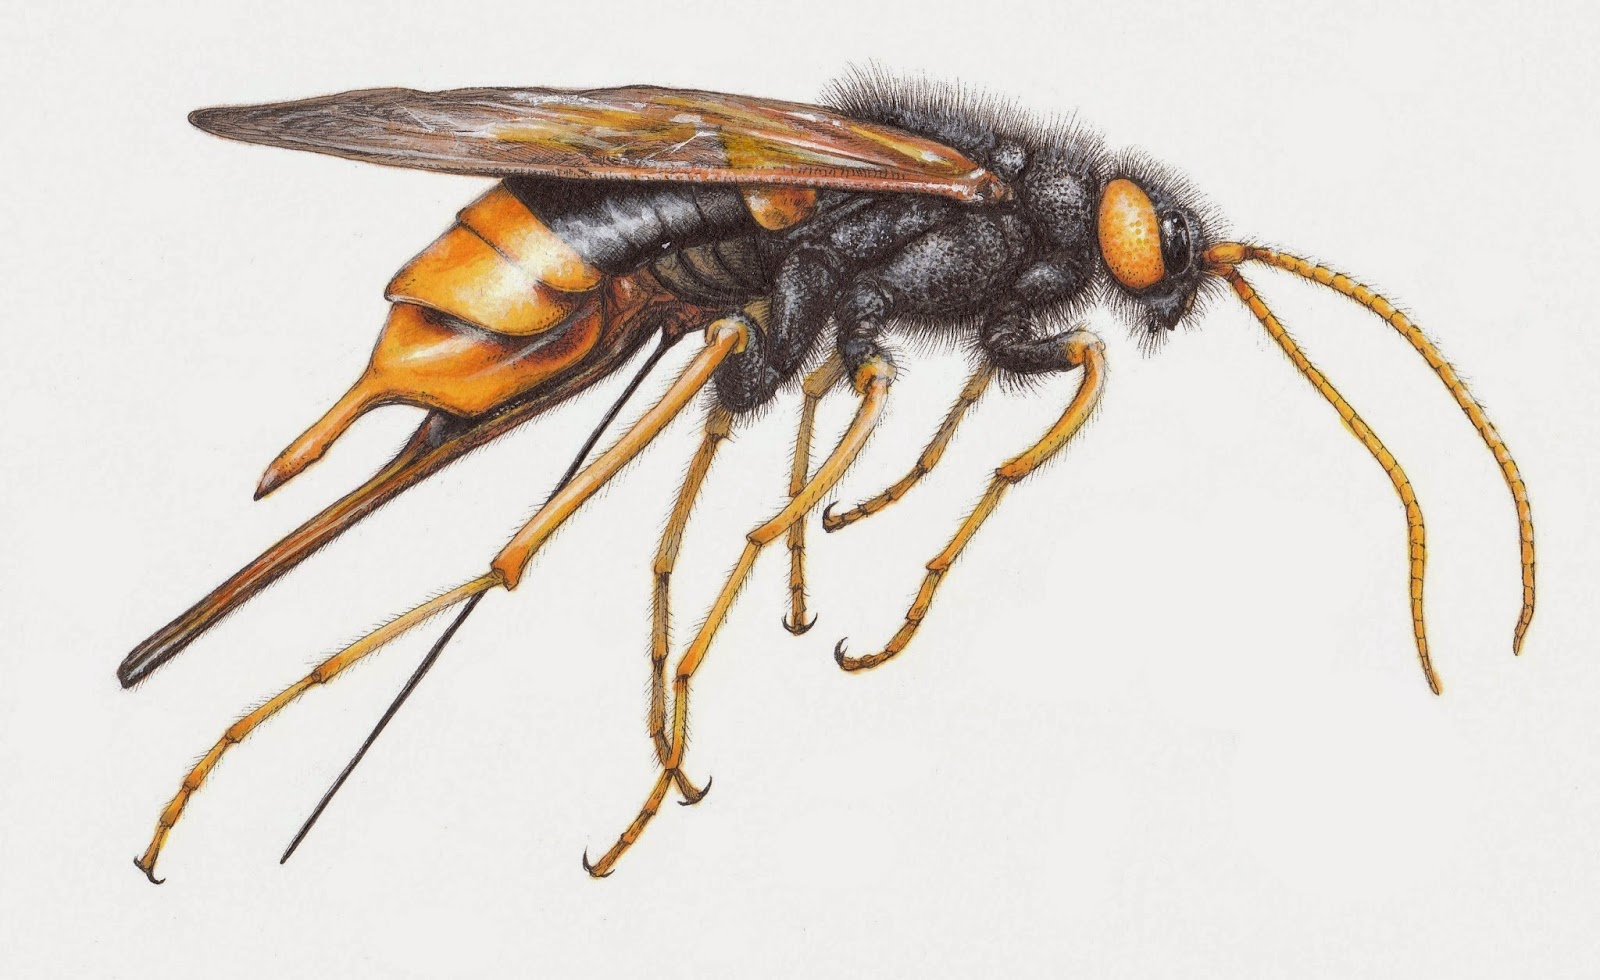 Insects of Britain: Giant Wood Wasp / Horntail